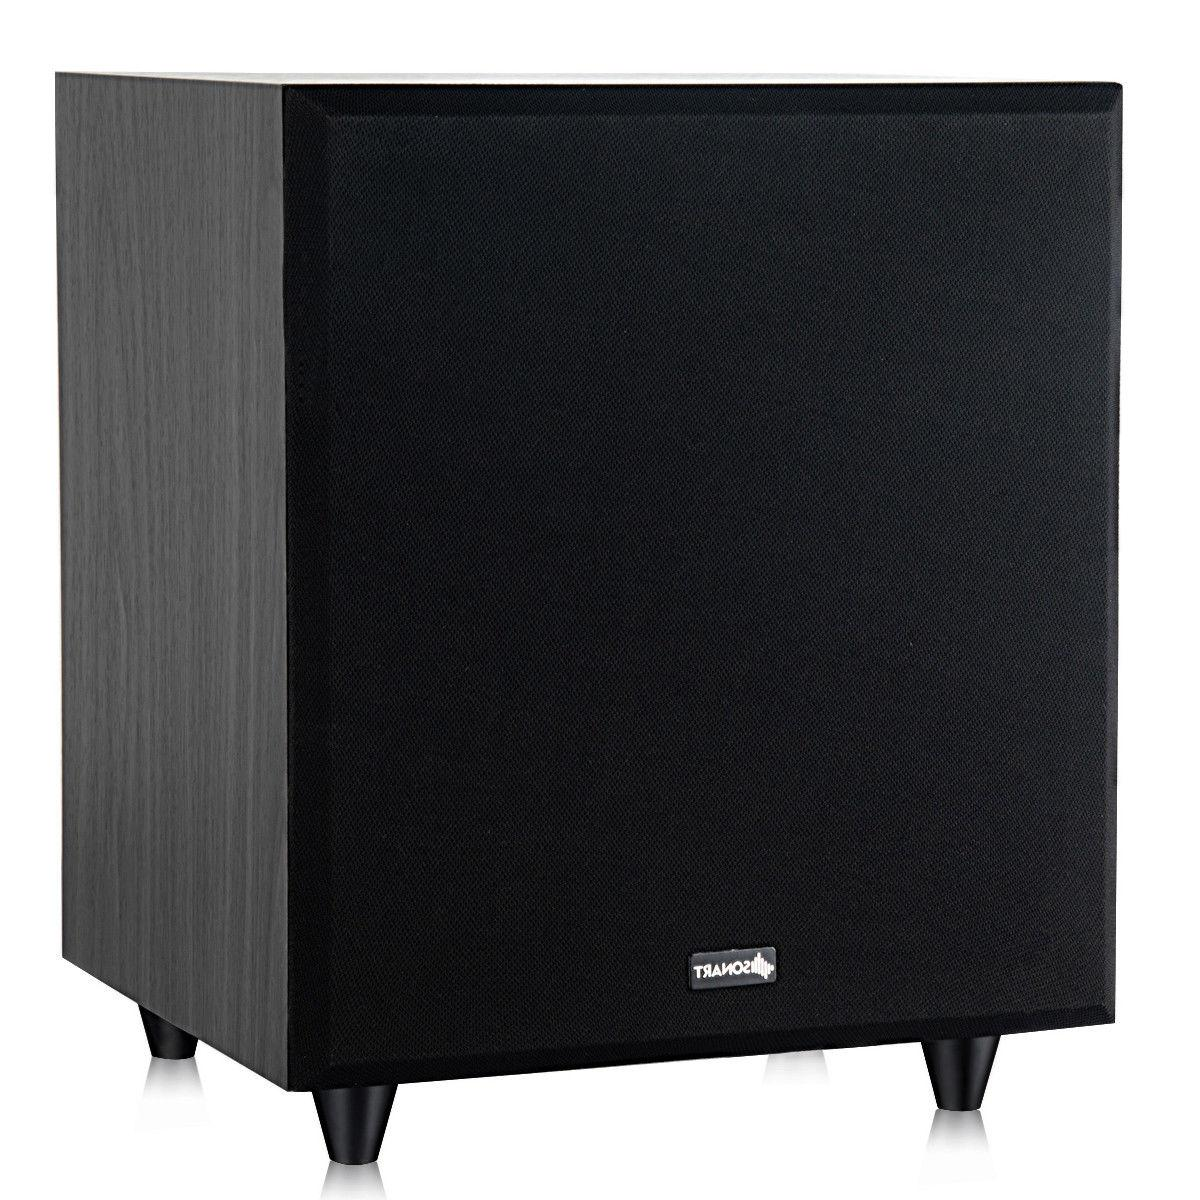 10 400w powered active subwoofer front firing